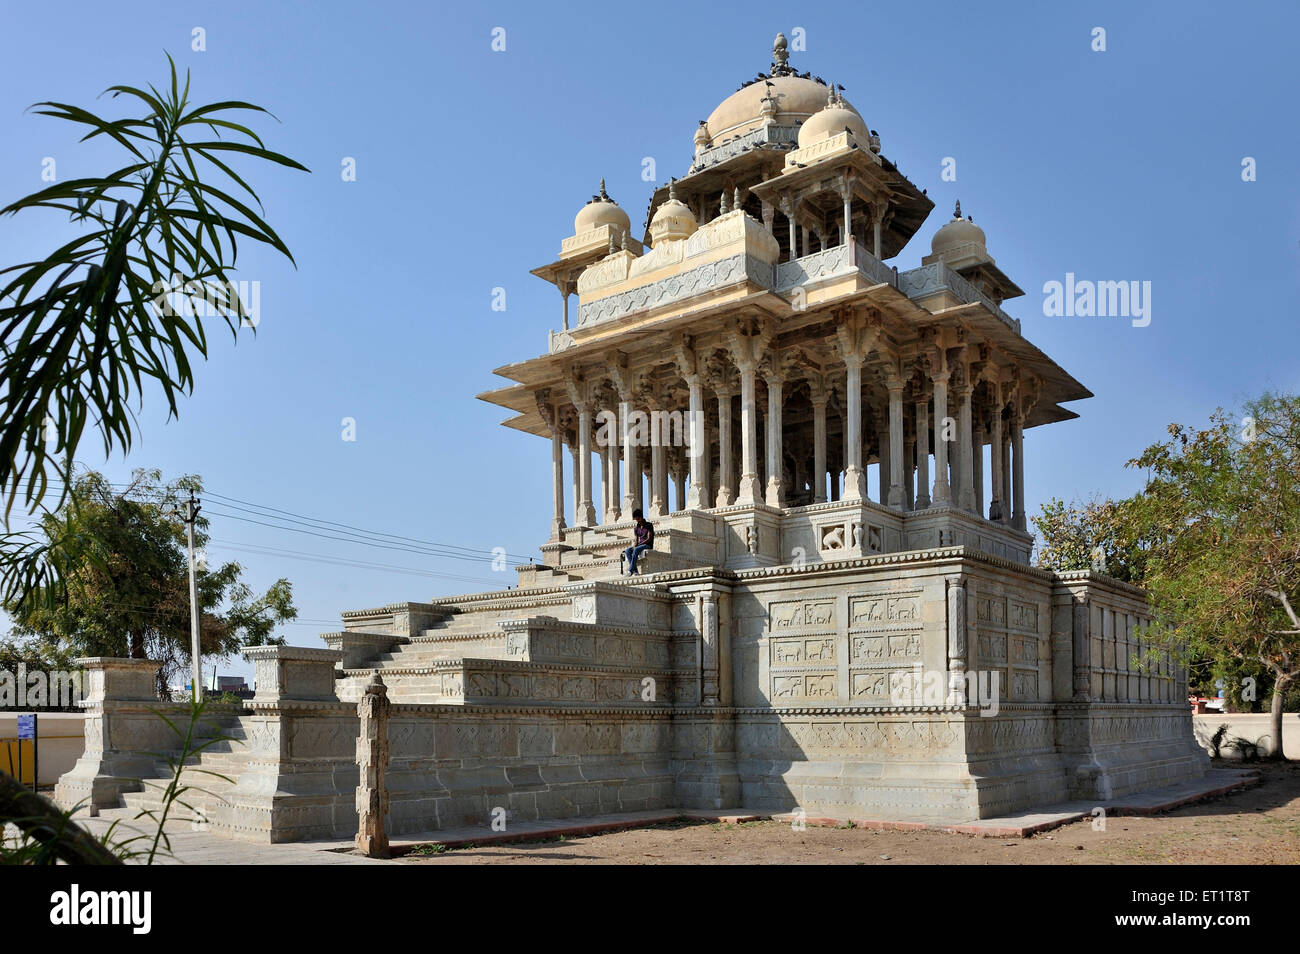 Cenotaph 84 pillared in bundi at rajasthan india Asia - Stock Image